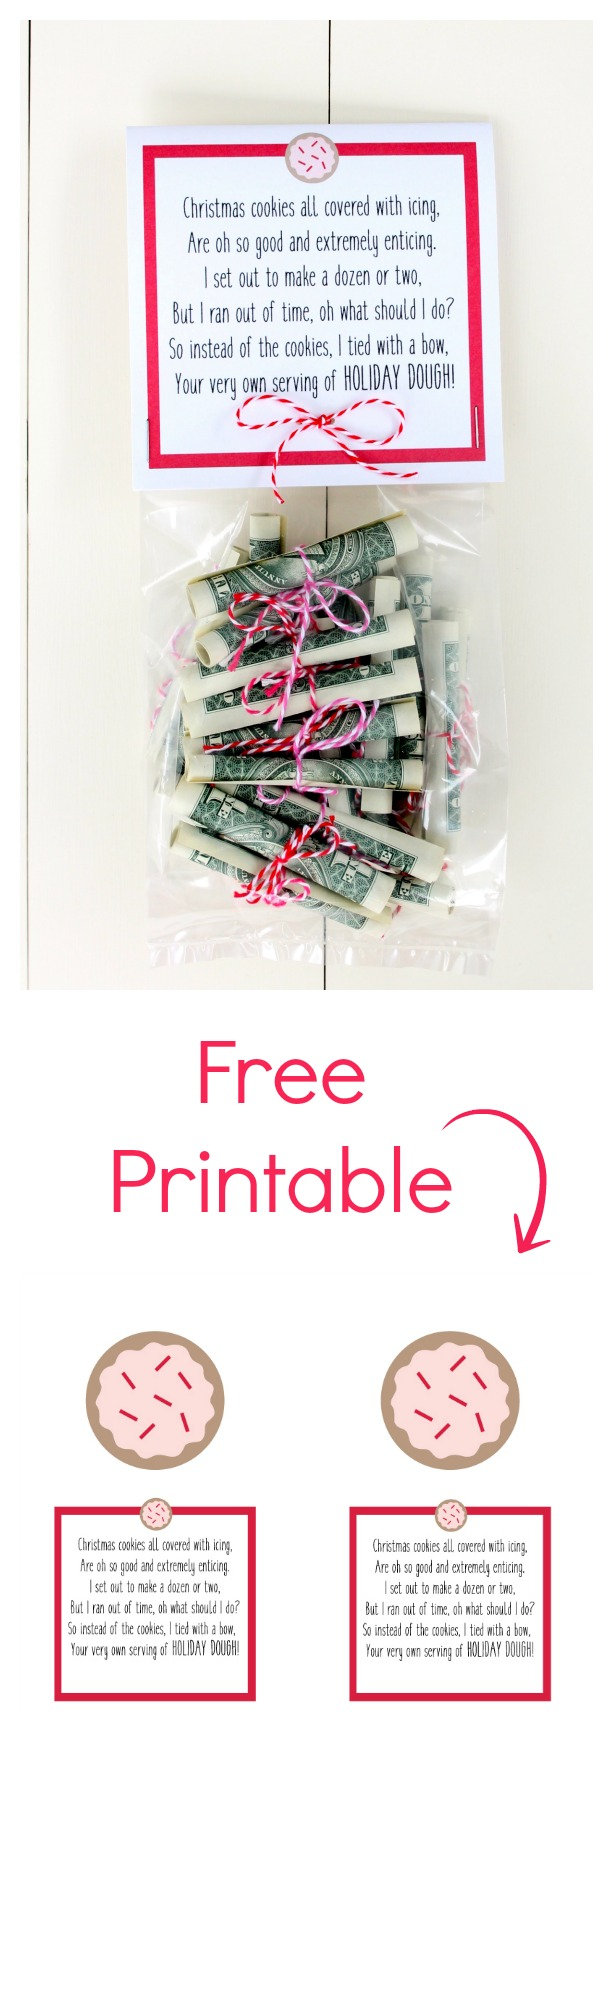 Christmas Money Free Printable. Fun way to give cash for Christmas.